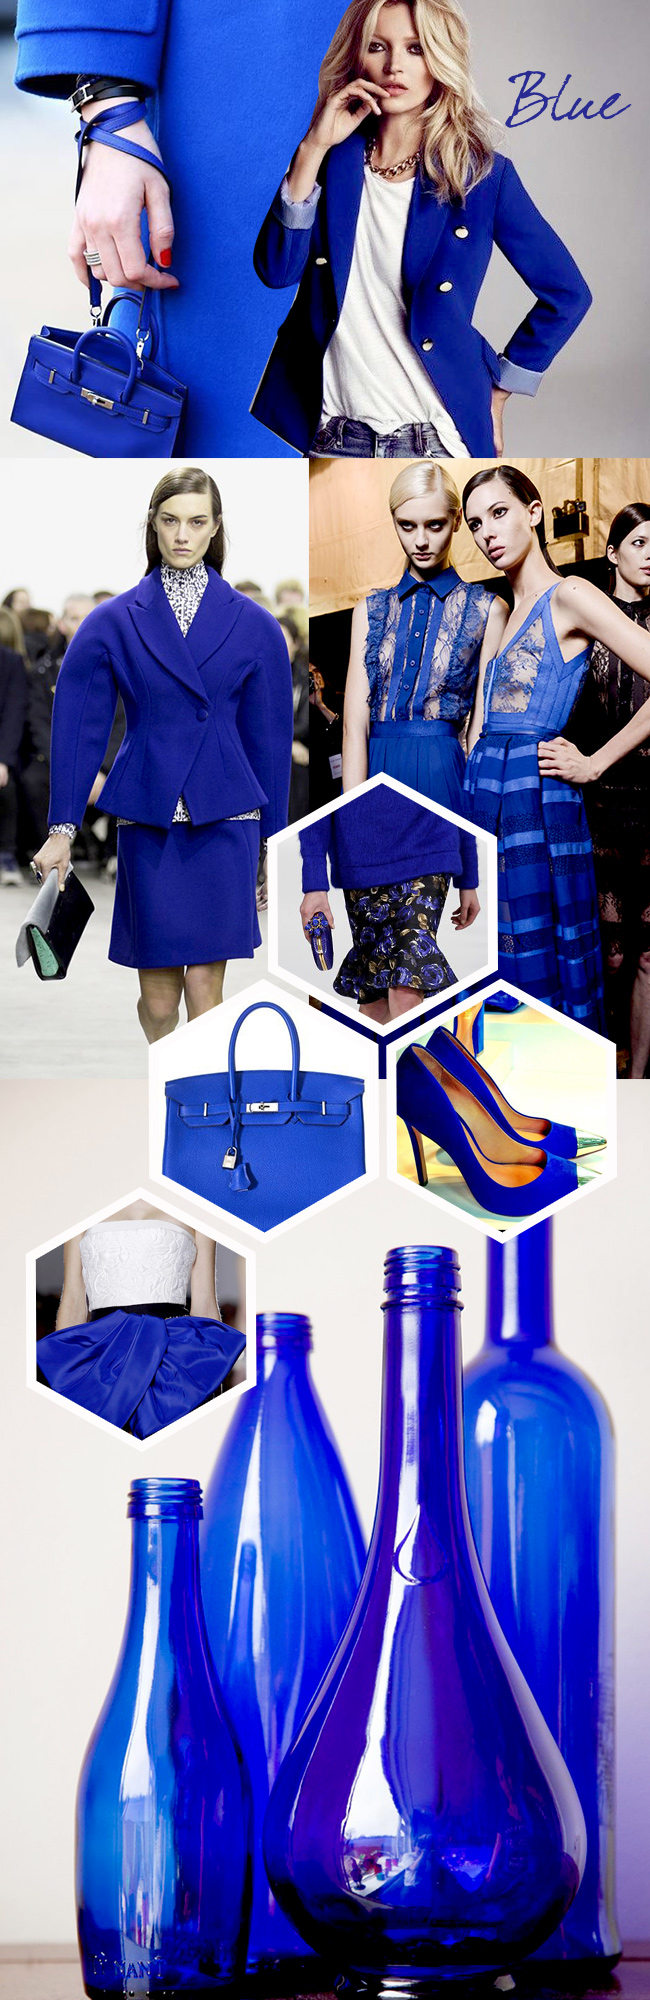 mood_board_blue01